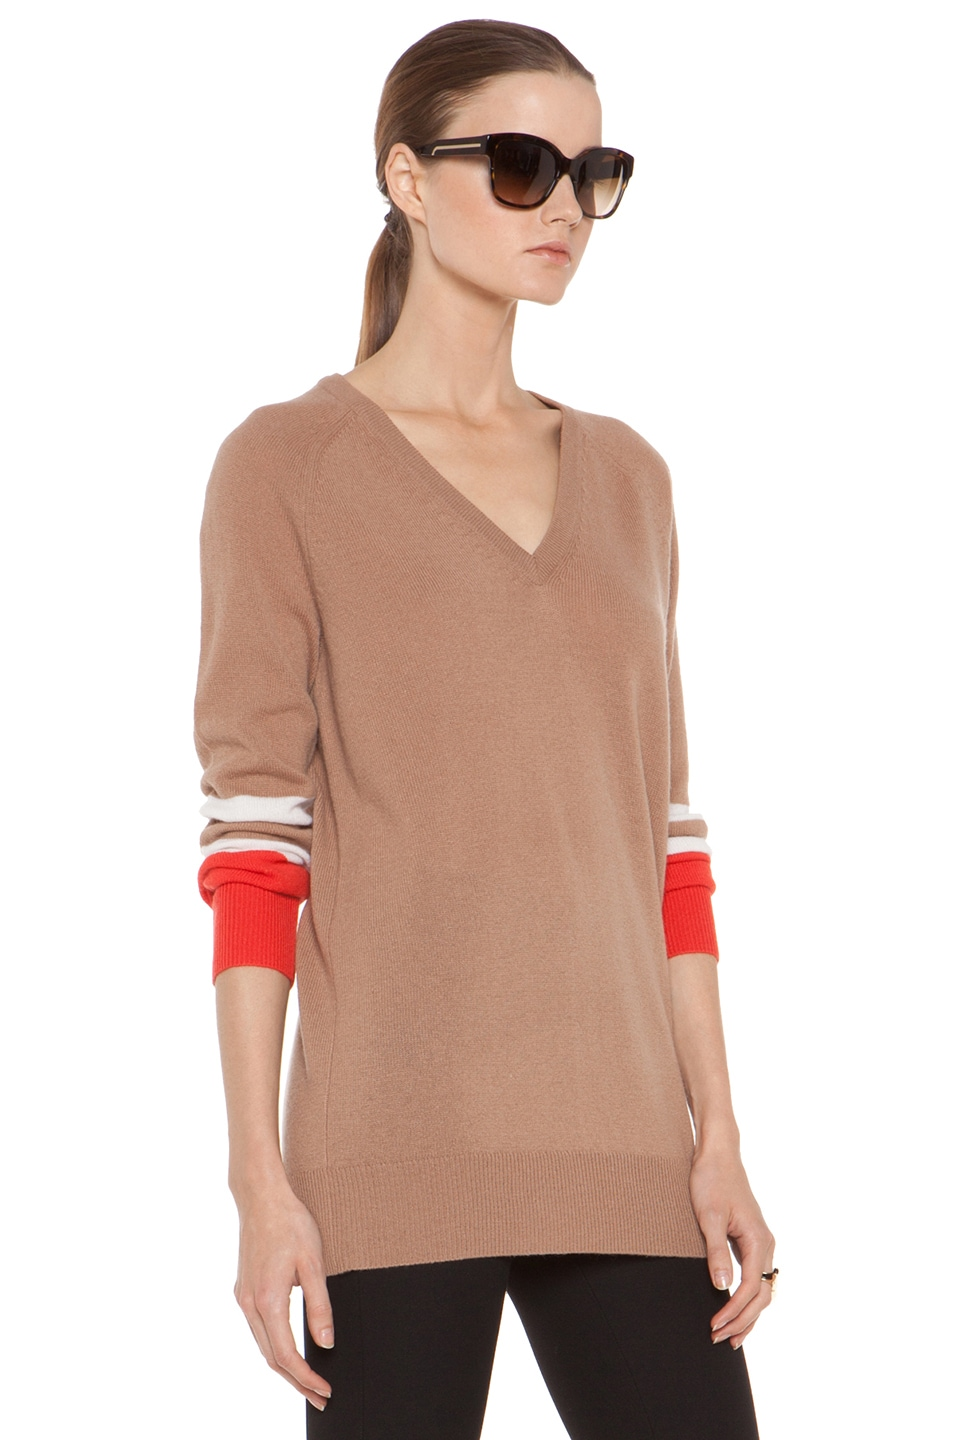 Image 4 of Equipment Asher V Neck Cashmere Colorblock Pullover in Camel